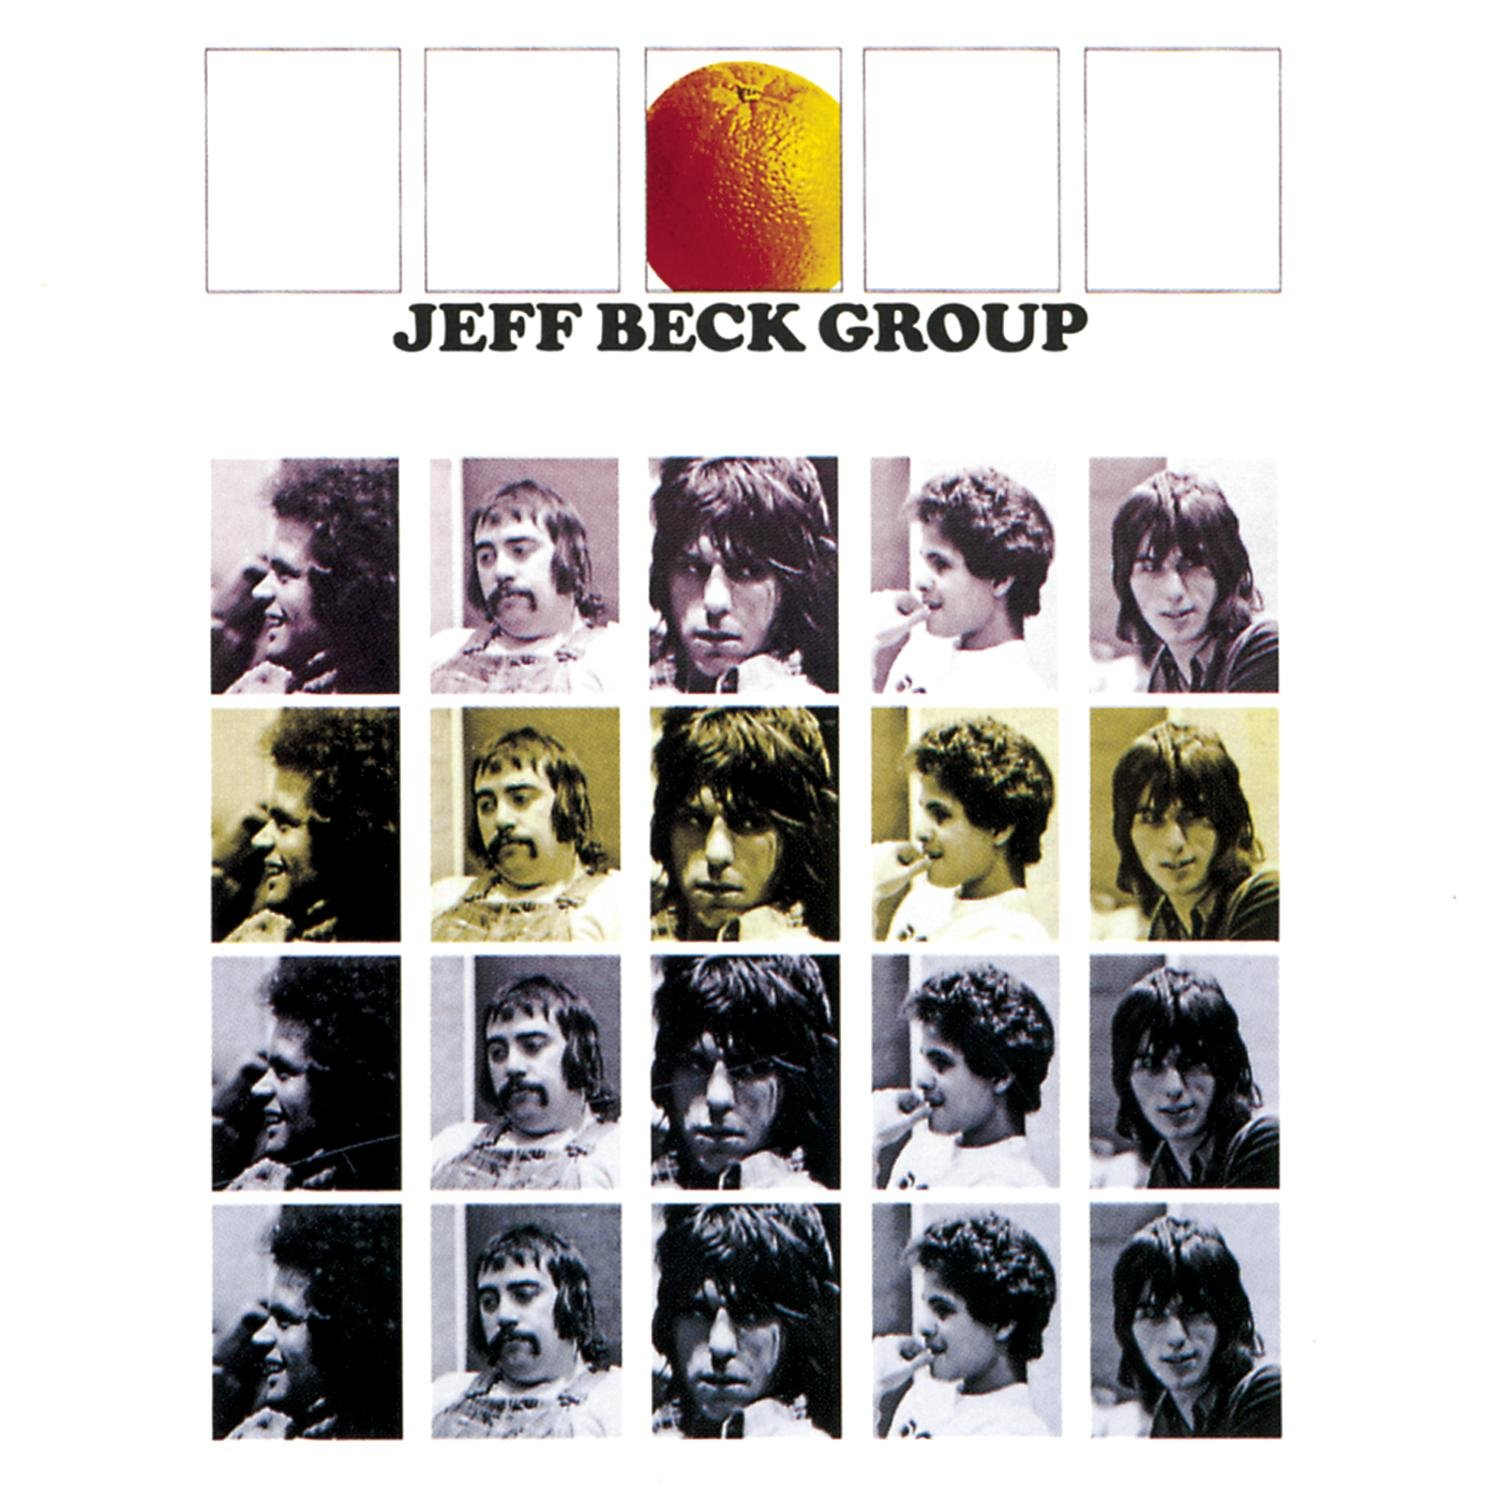 Jeff Beck Group by CD